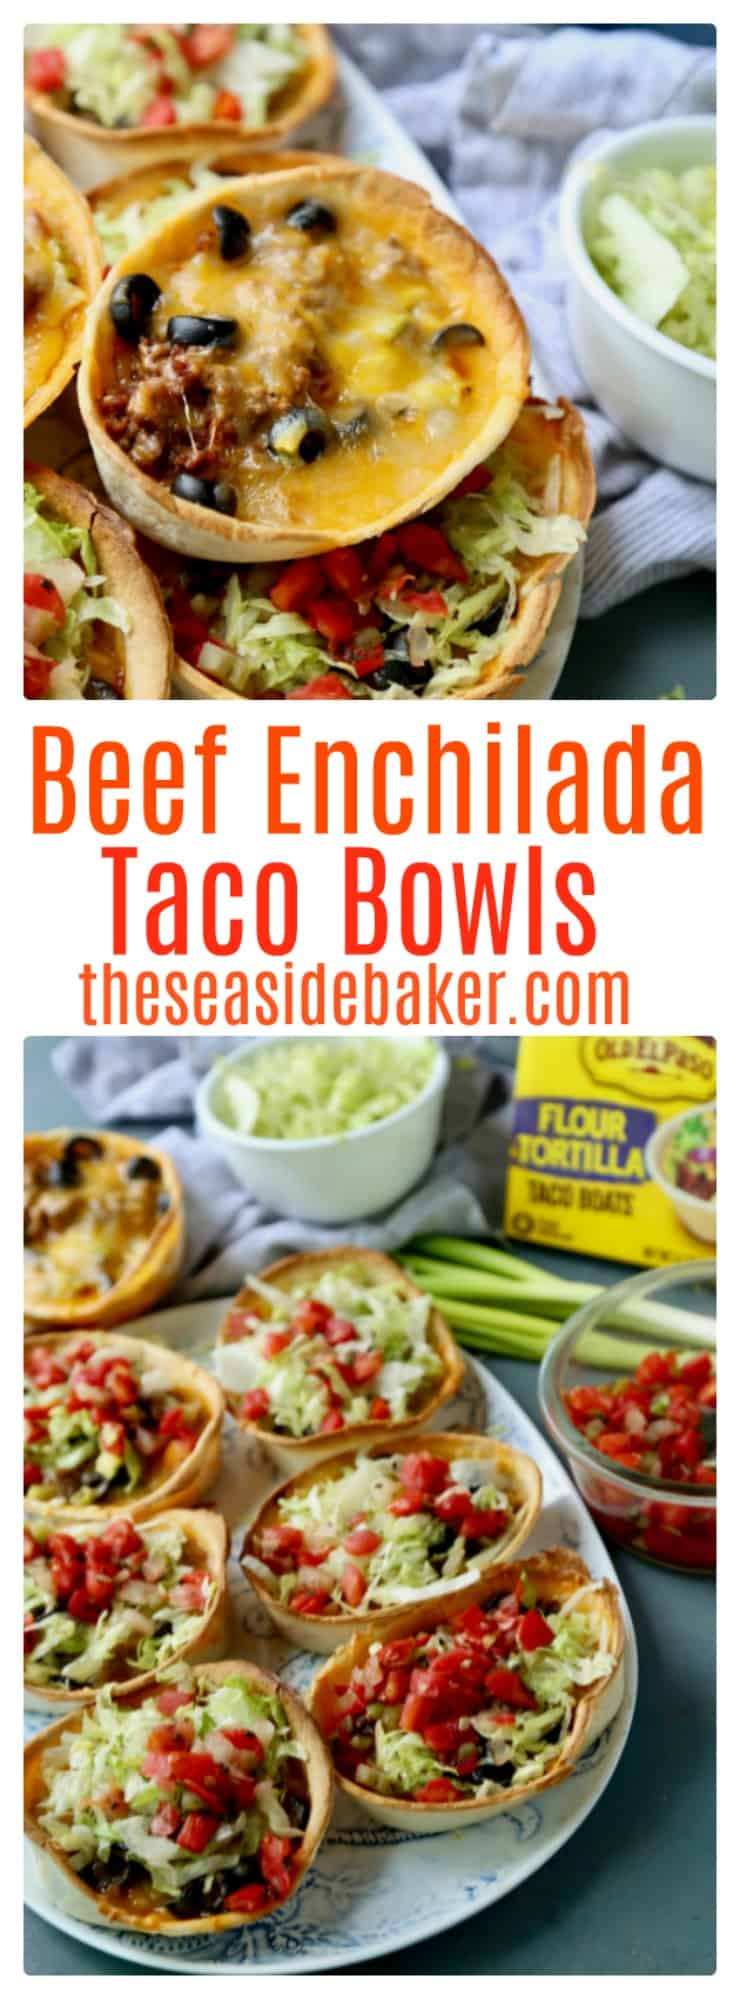 These Beef Enchilada Boats are easy to make and perfect for Sunday Football munching! #footballfood #superbowlrecipes #superbowlfood #footballpartyfood #tacorecipes #enchiladas #appetizer #mexicanfoodrecipe